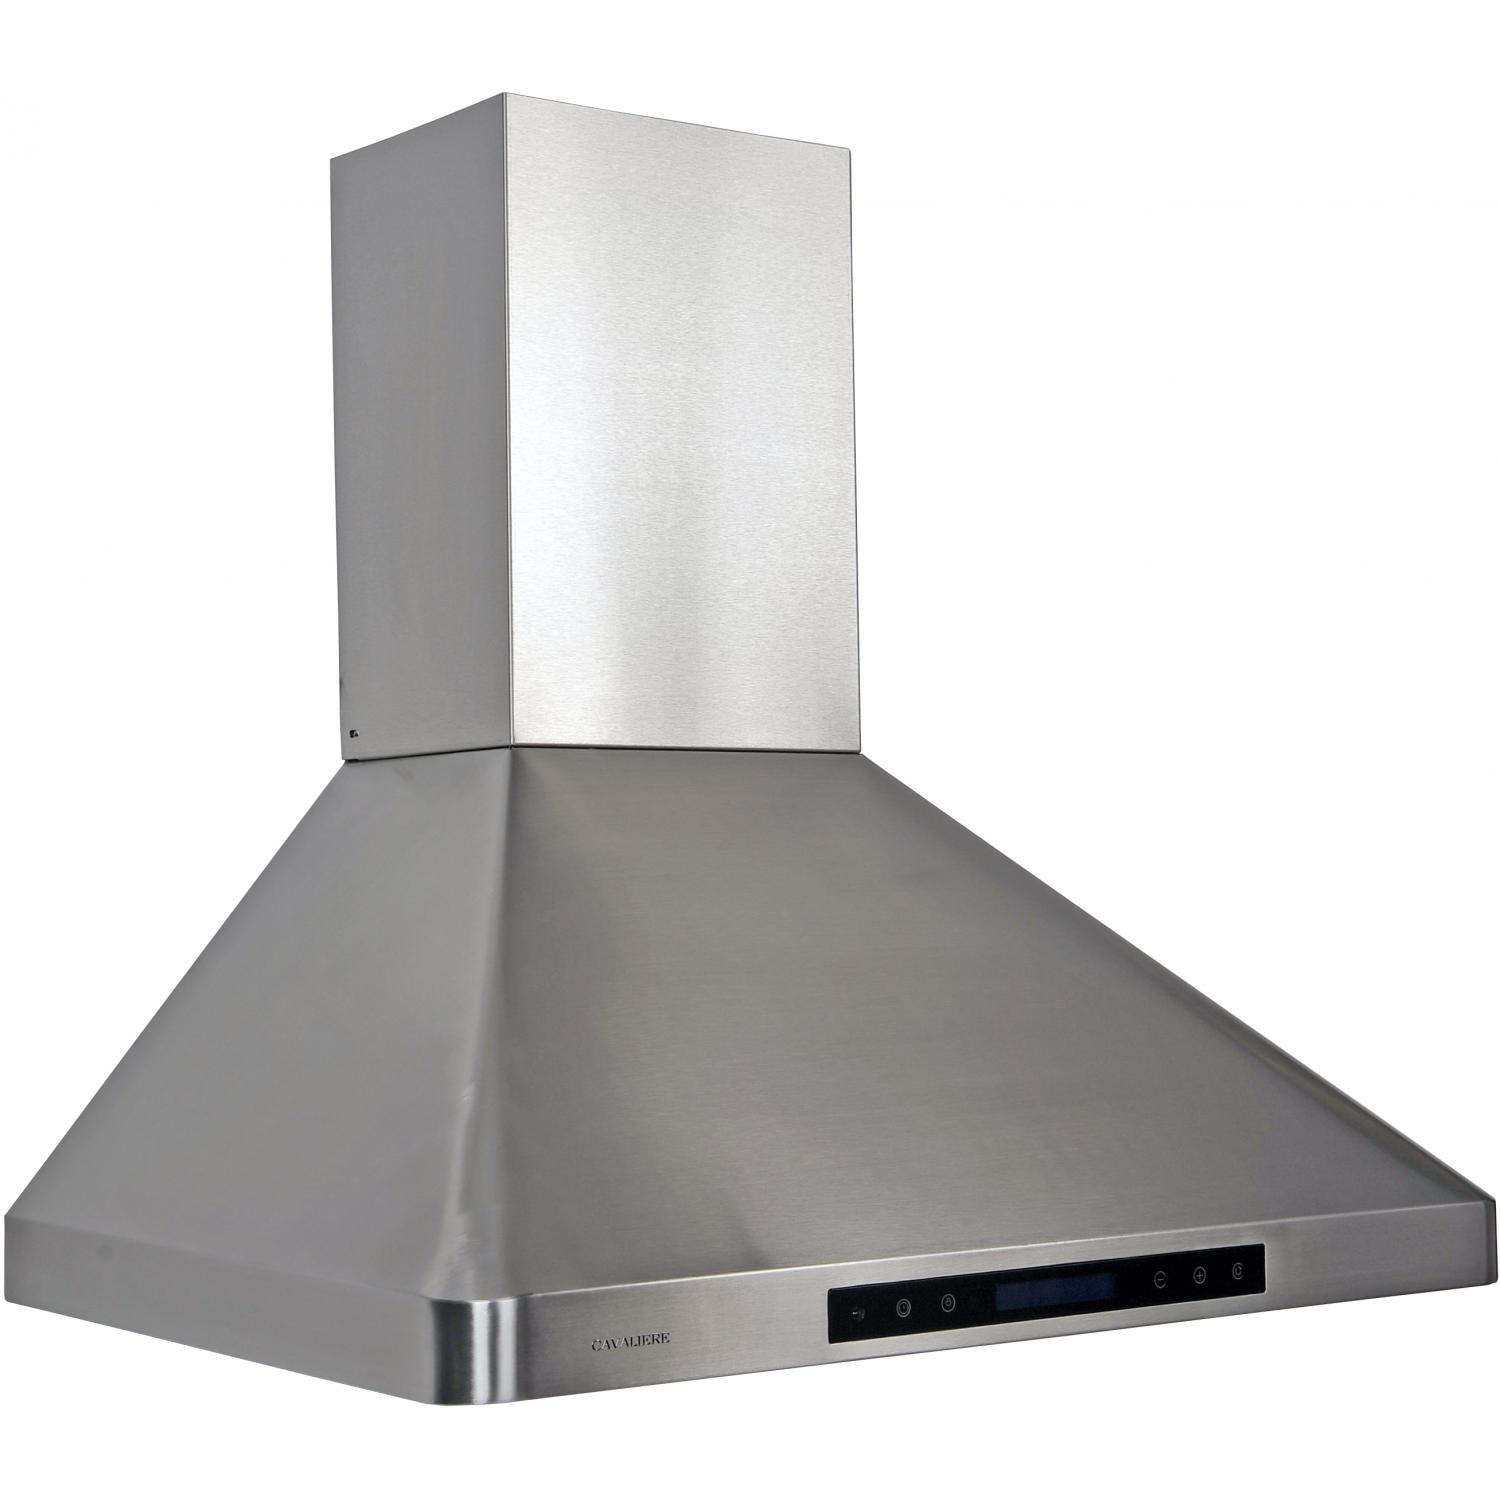 Cavaliere AirPRO 238 Professional Series 30-Inch 900 CFM Wall Mounted Range Hood - AP238-PS29-30